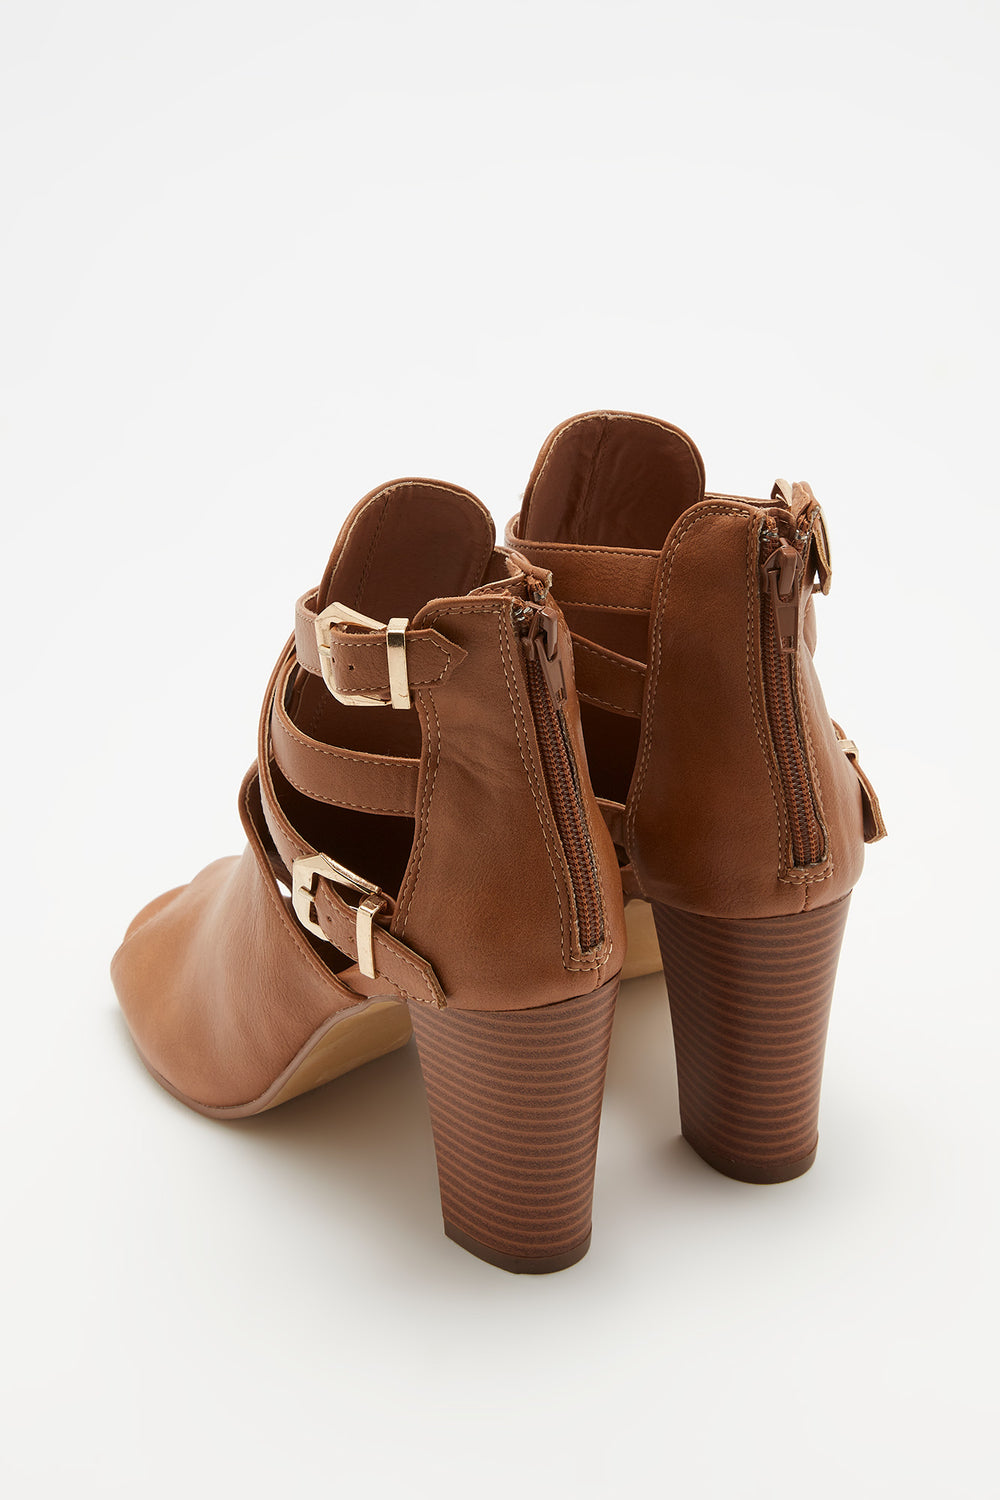 Faux-Leather Peep Toe Ankle Bootie Tan